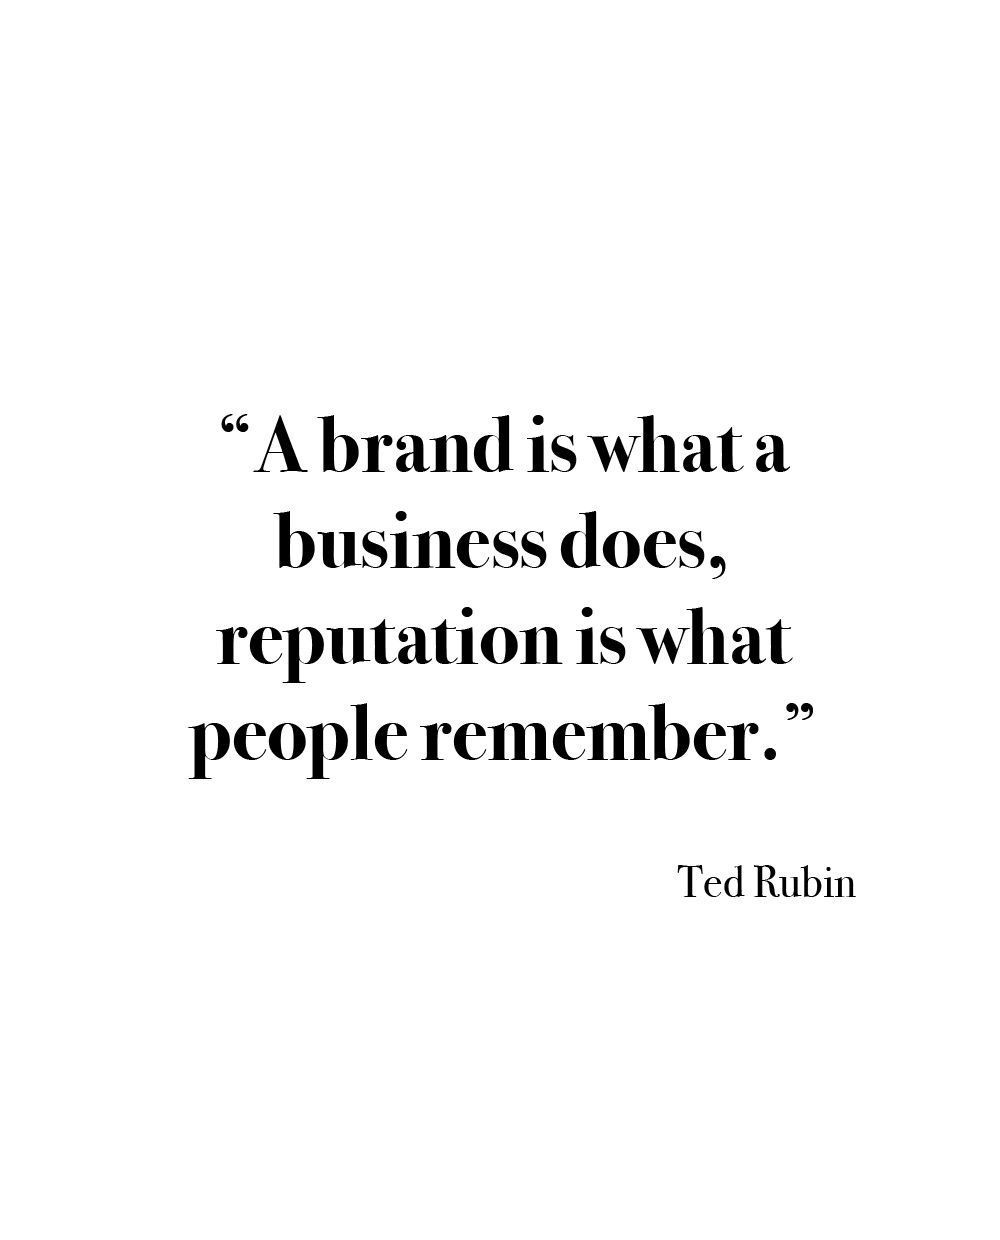 A brand is what a business does a reputation is what